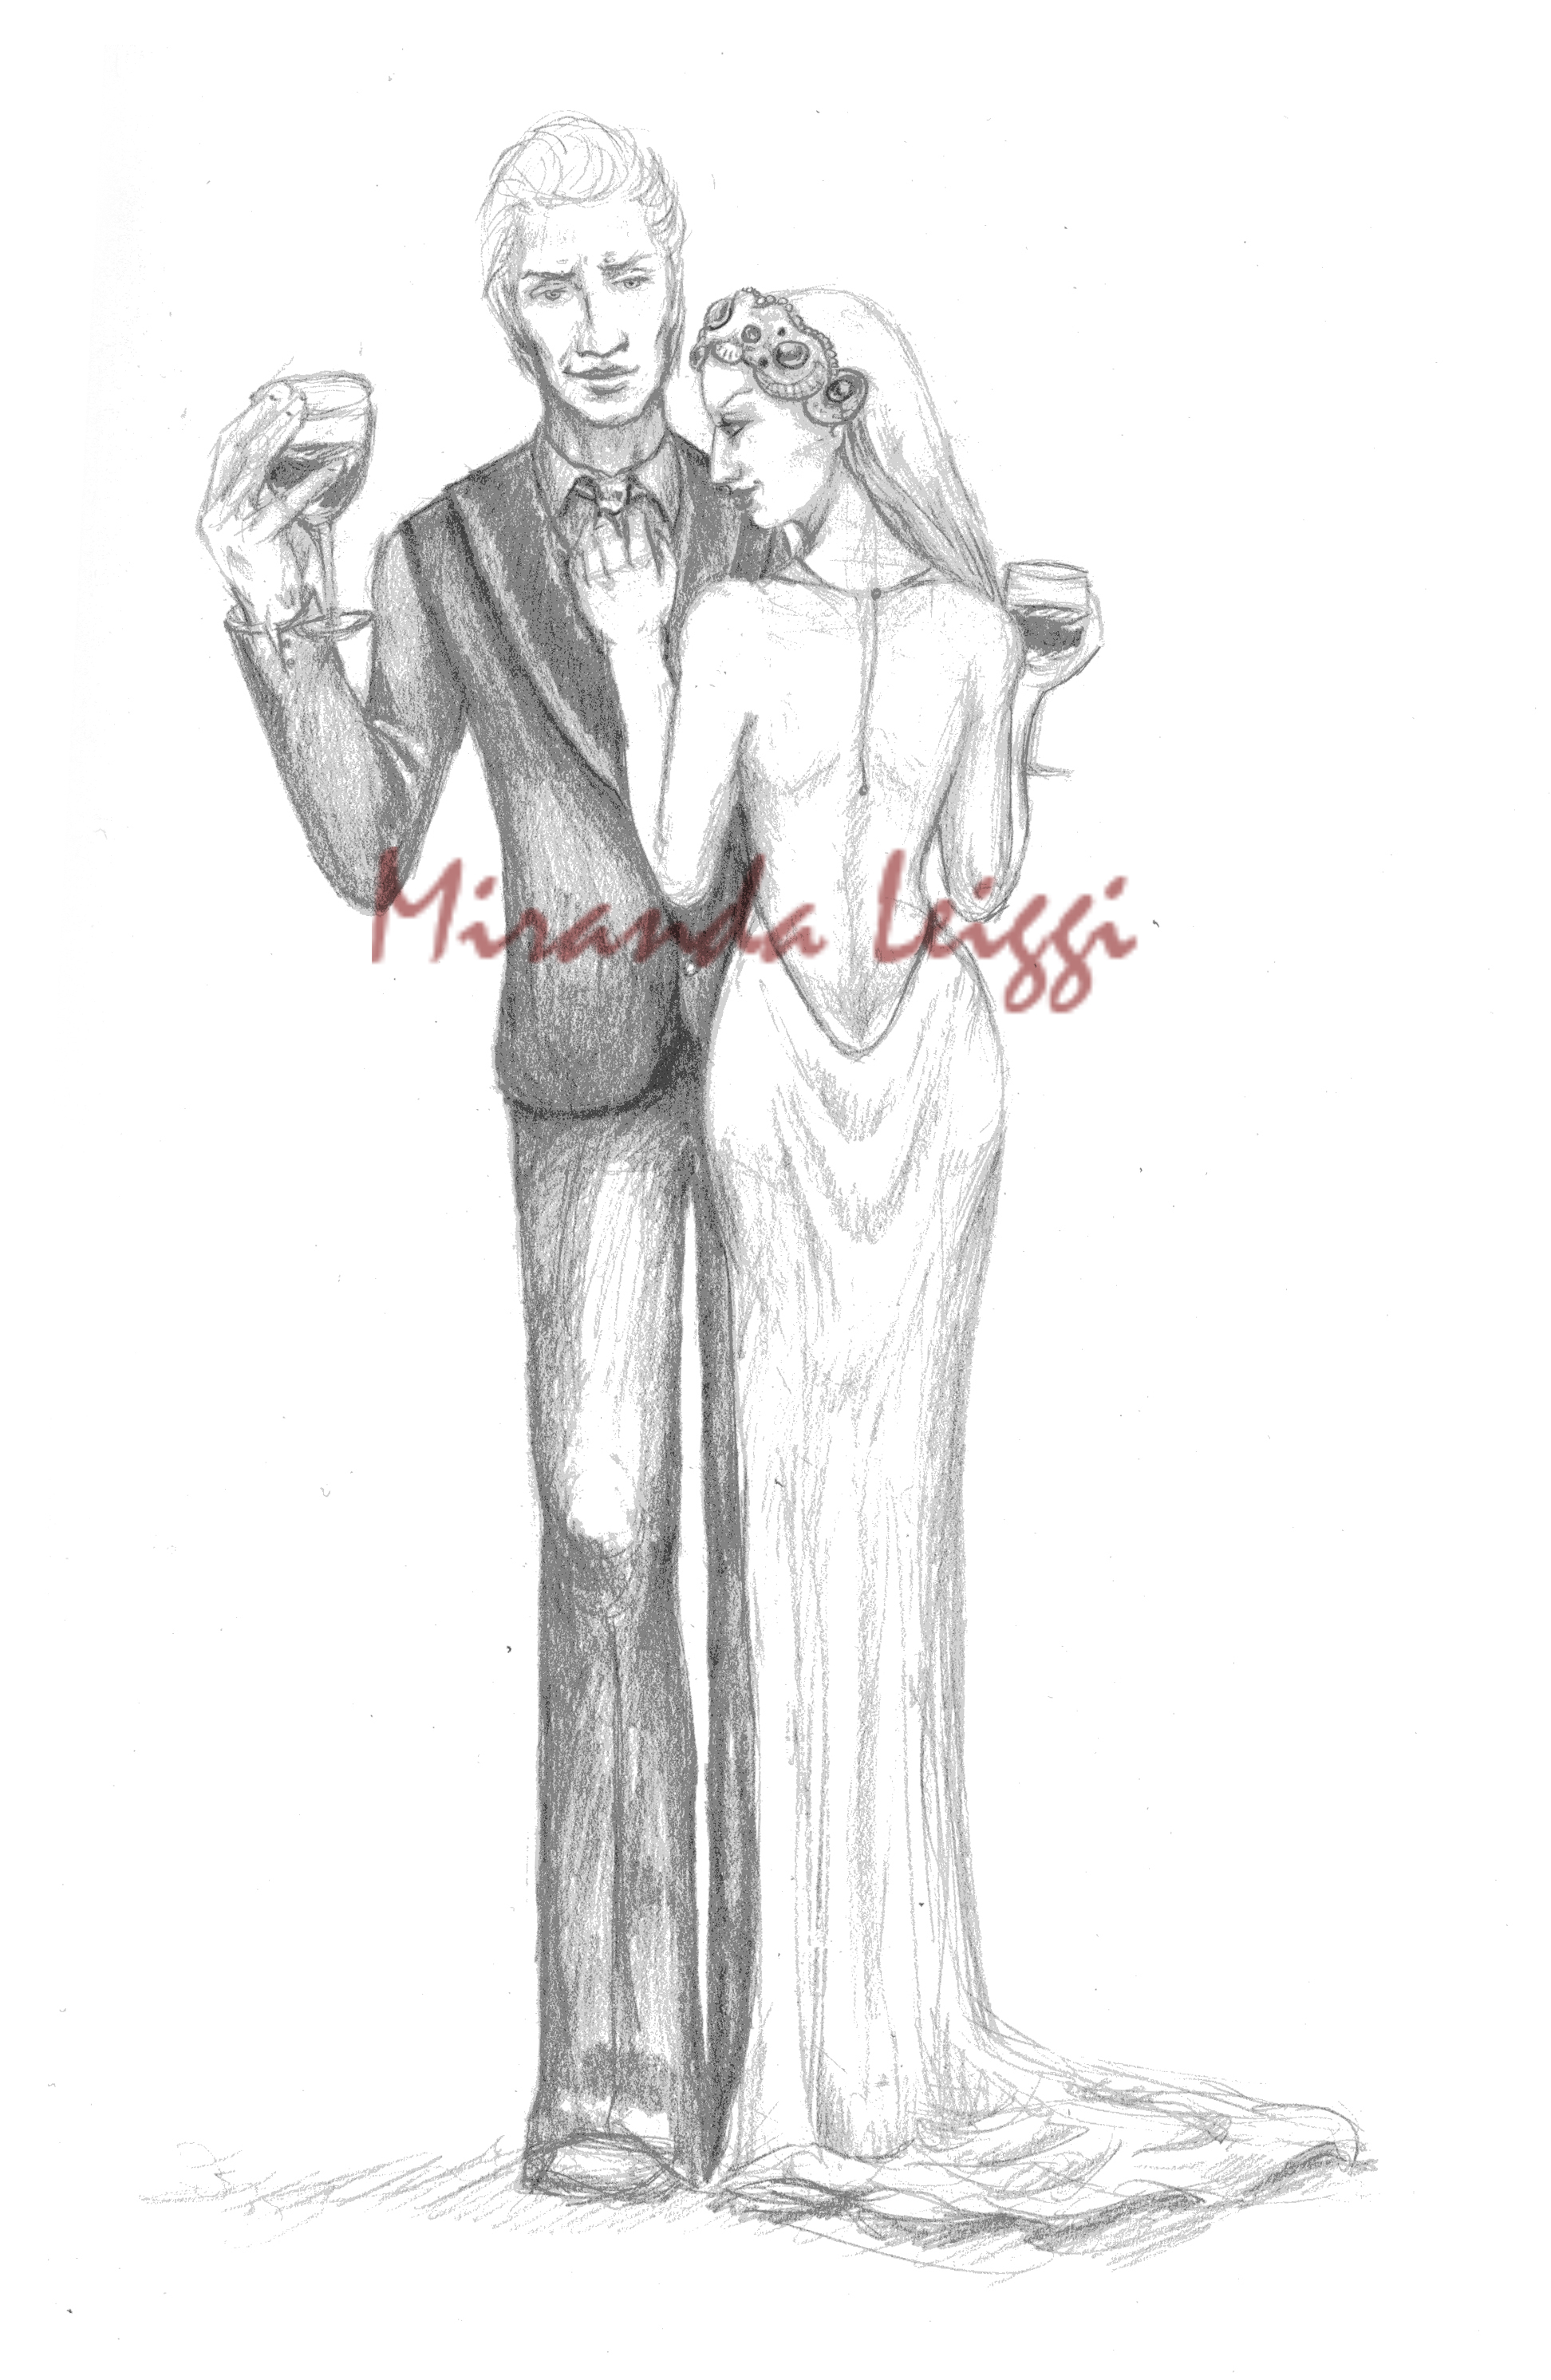 formal wear, vampires, wine glass, pencil